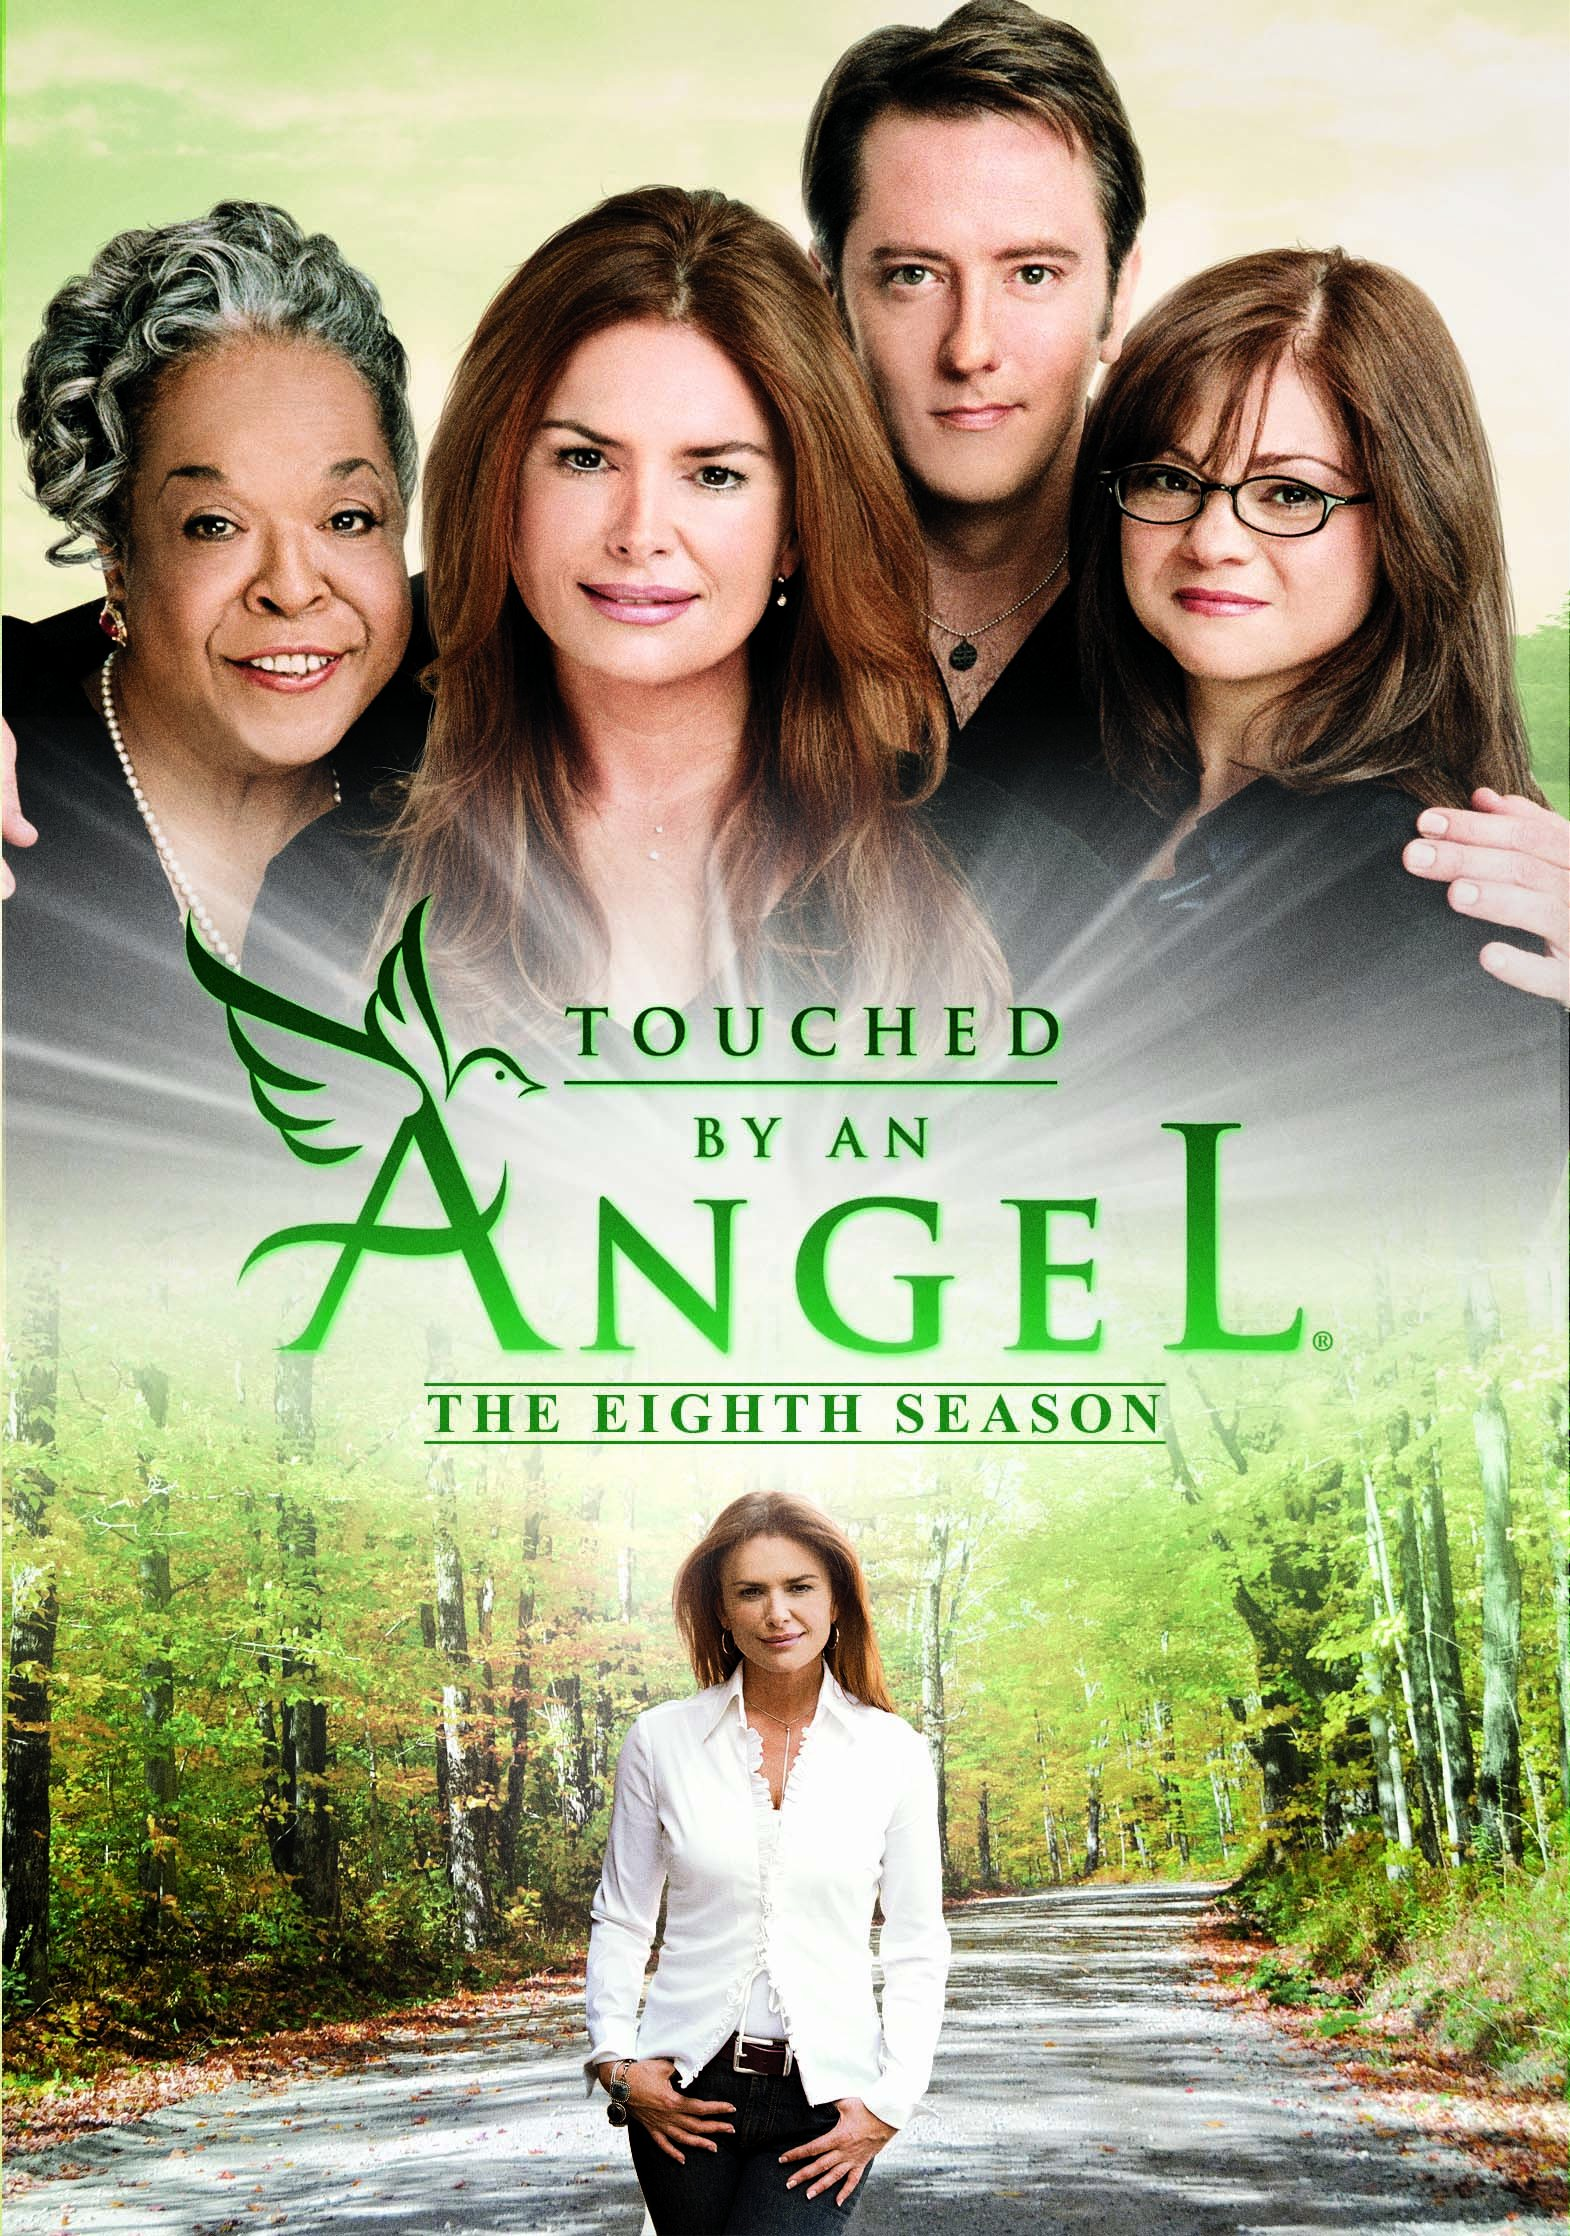 Touched%20by%20an%20Angel